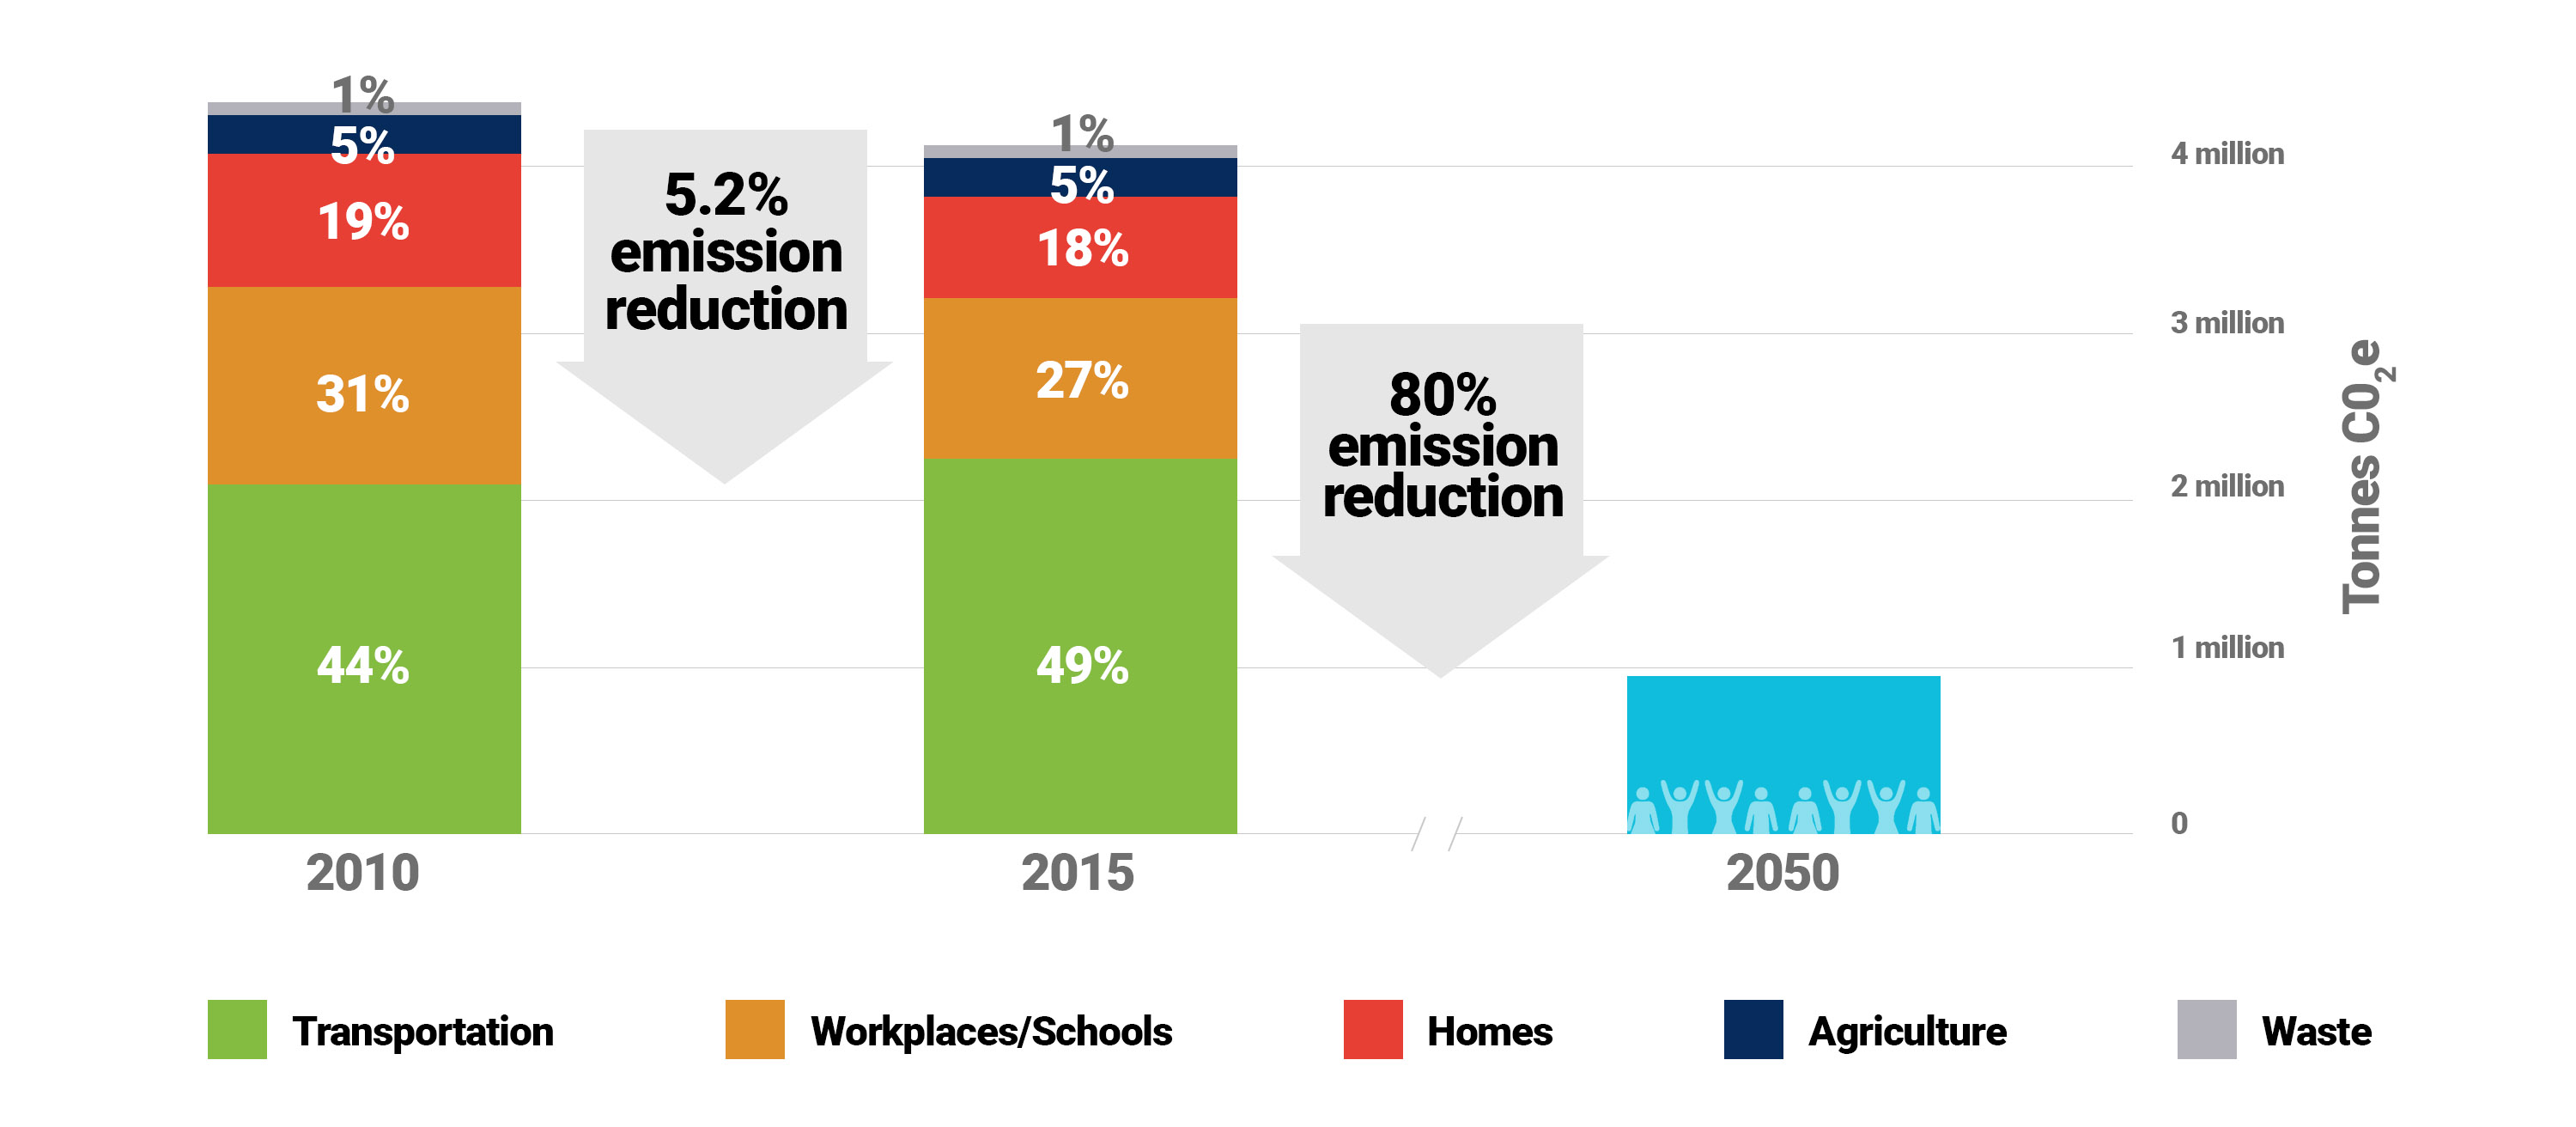 GHG Reductions and Targets